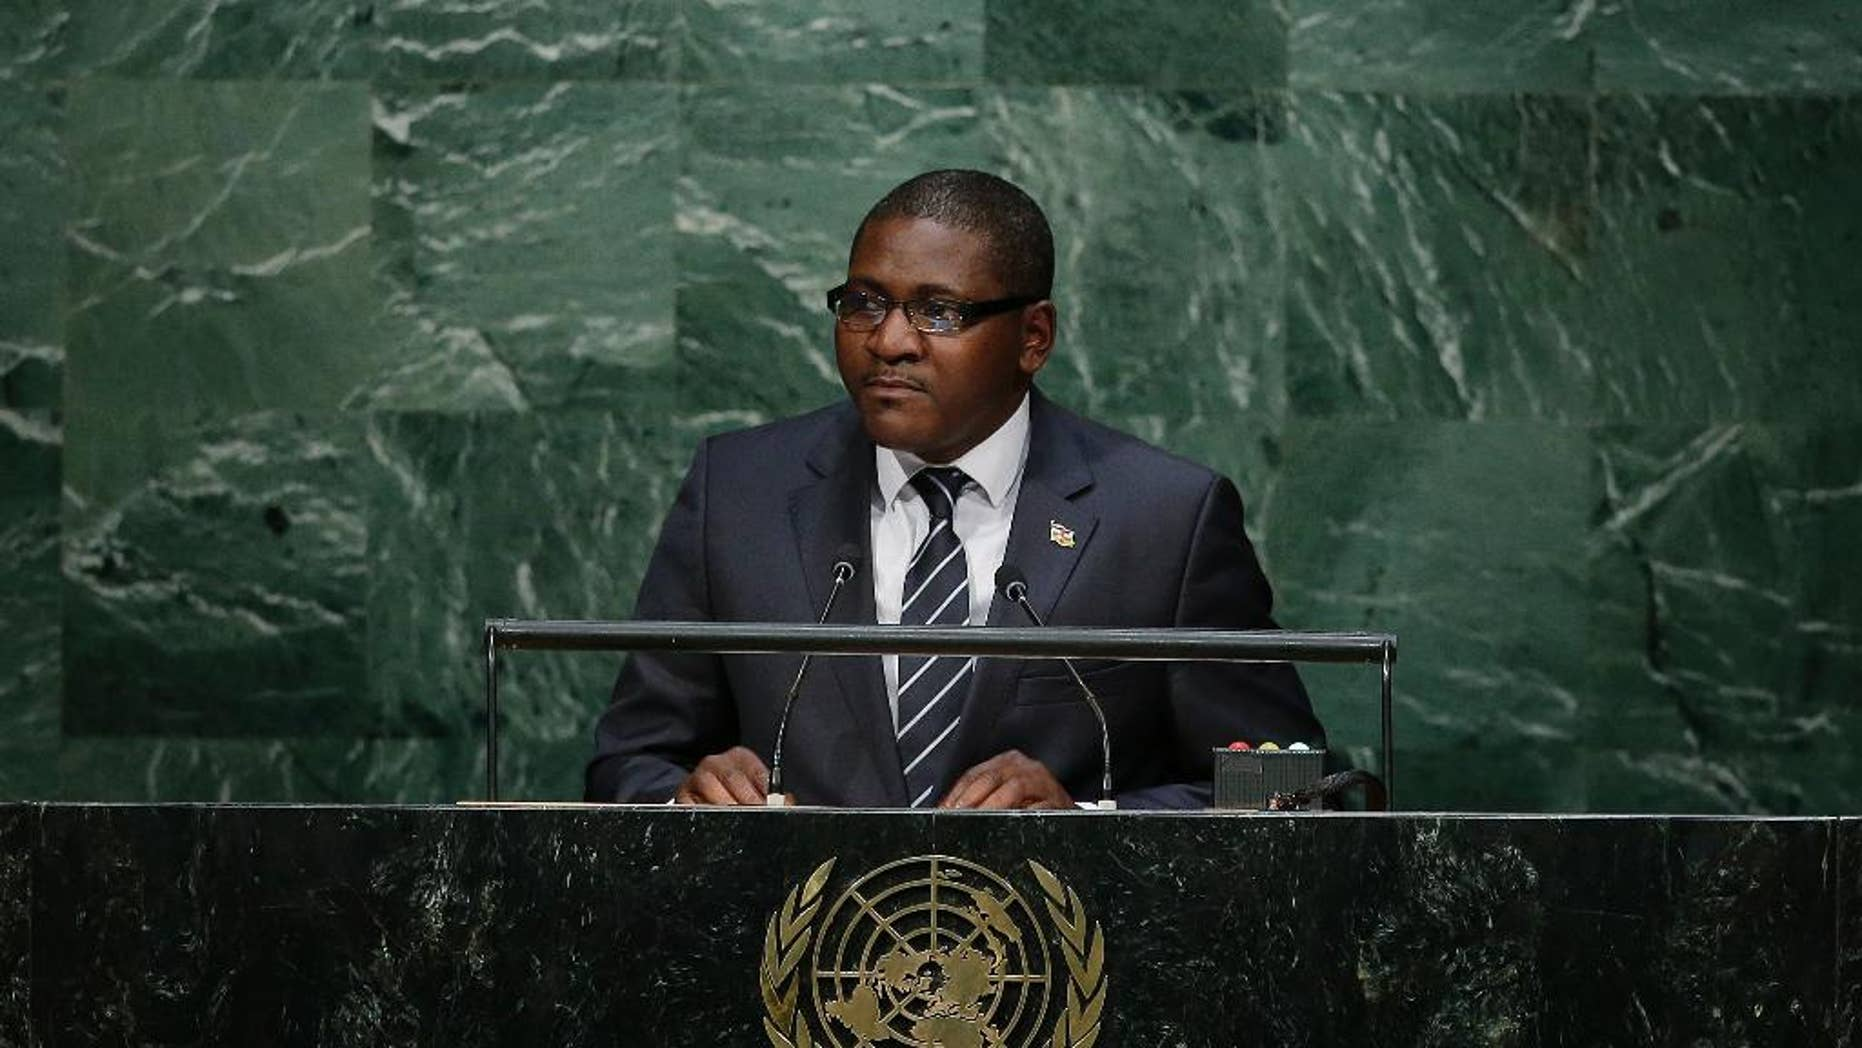 Foreign Minister for the Central African Republic, Samuel Rangba speaks during the 70th session of the United Nations General Assembly at U.N. headquarters Wednesday, Sept. 30, 2015. (AP Photo/Frank Franklin II)